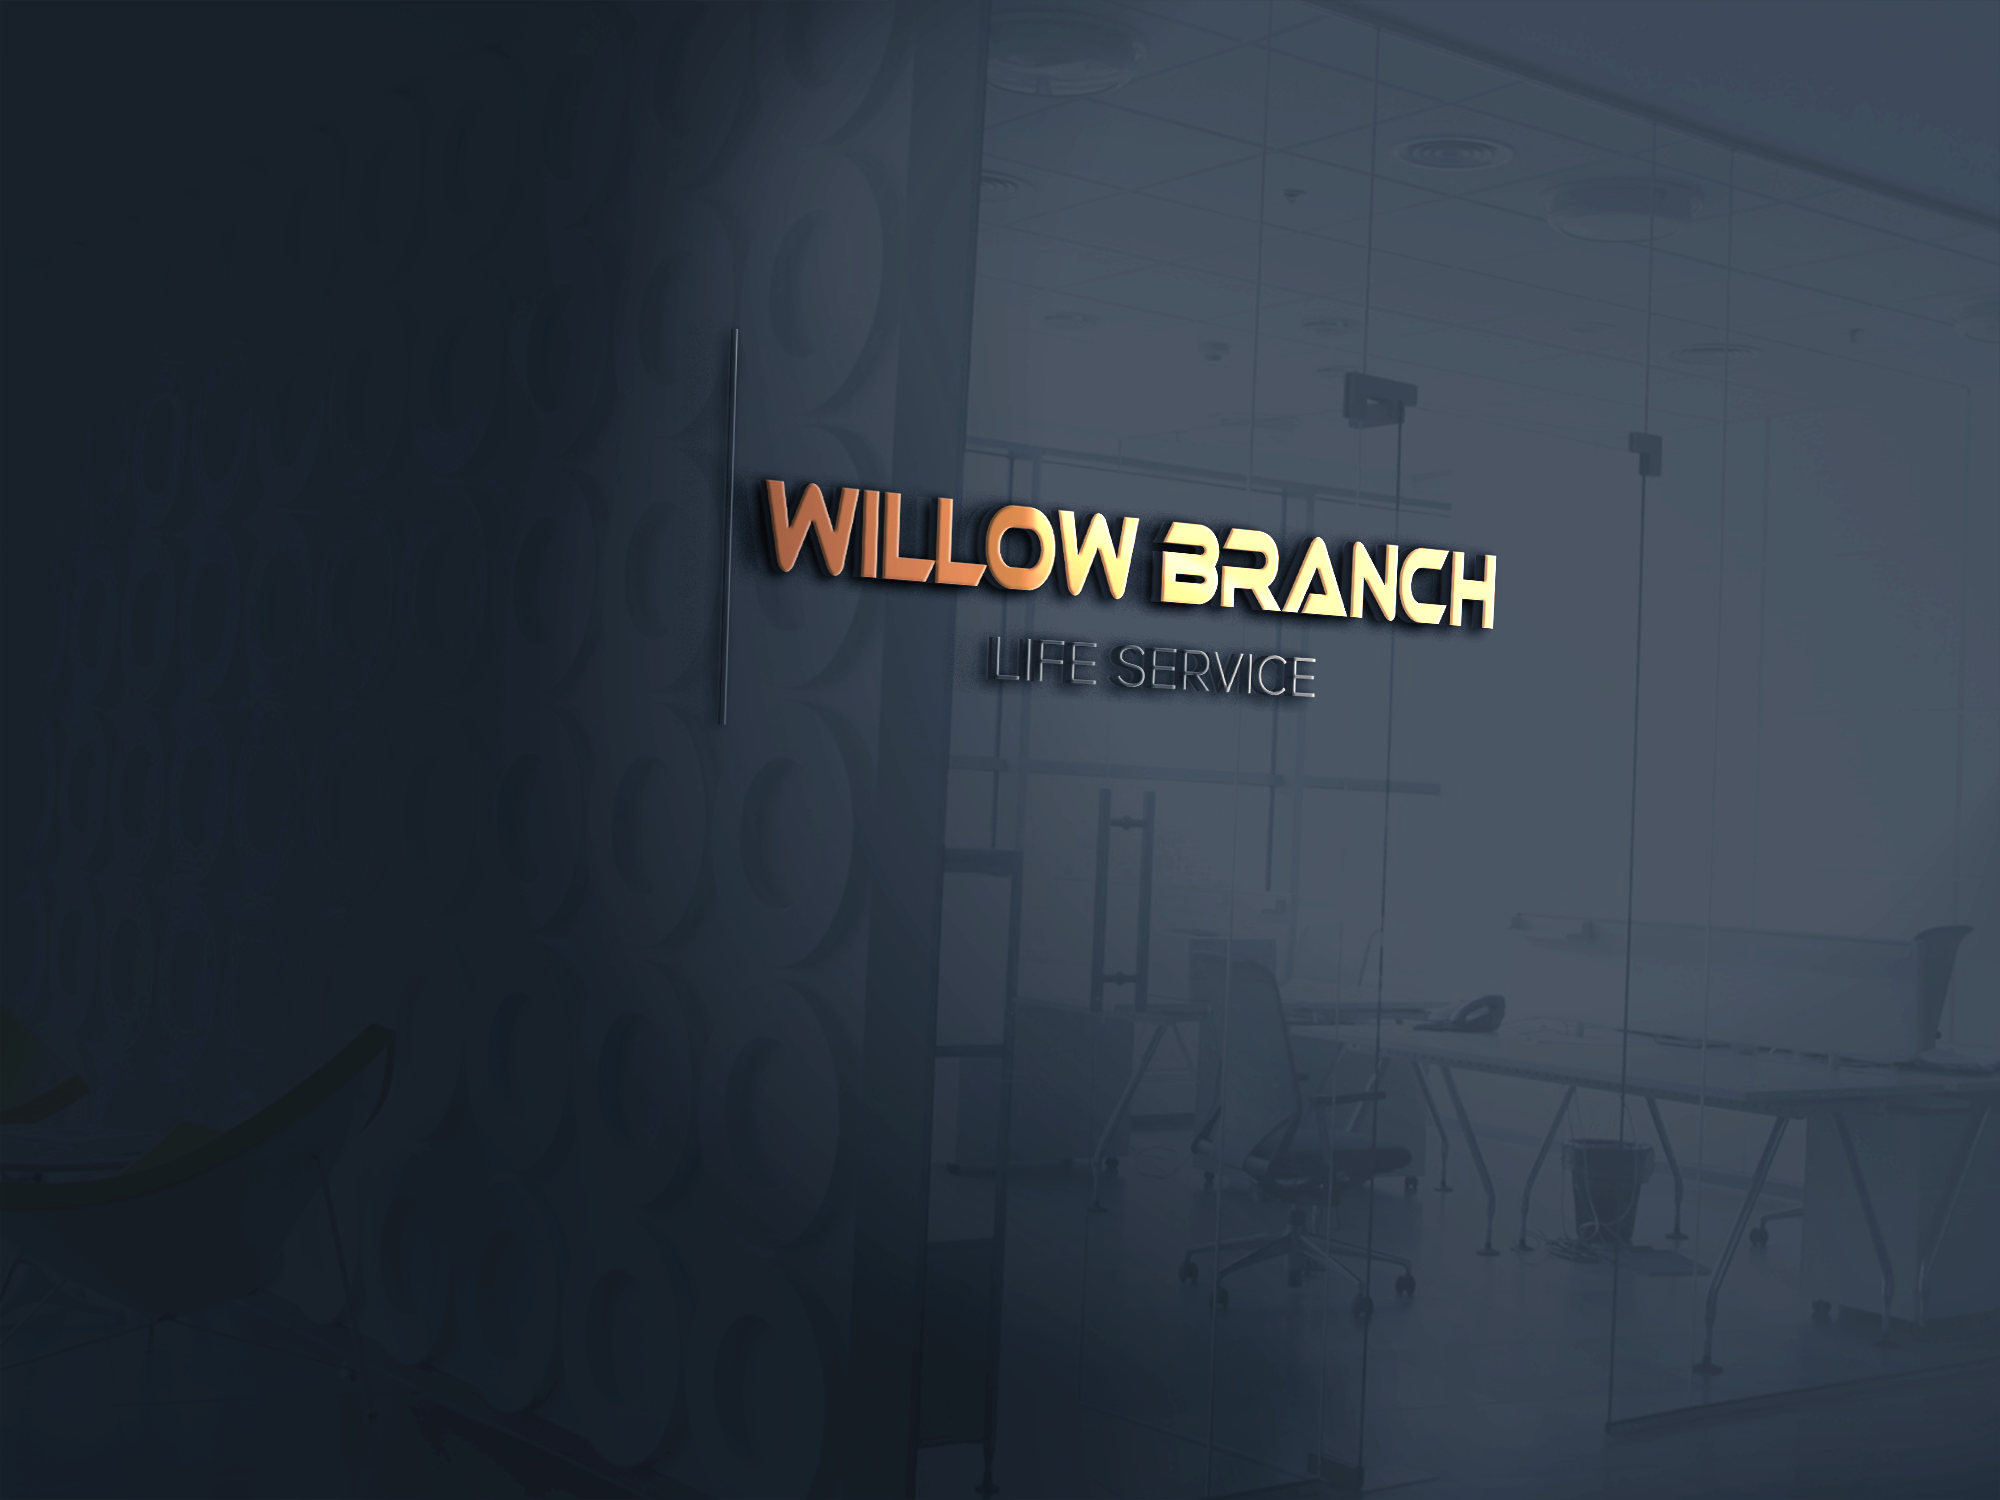 Logo Design by Ayrin Akter - Entry No. 152 in the Logo Design Contest Artistic Logo Design for Willow Branch Life Service.